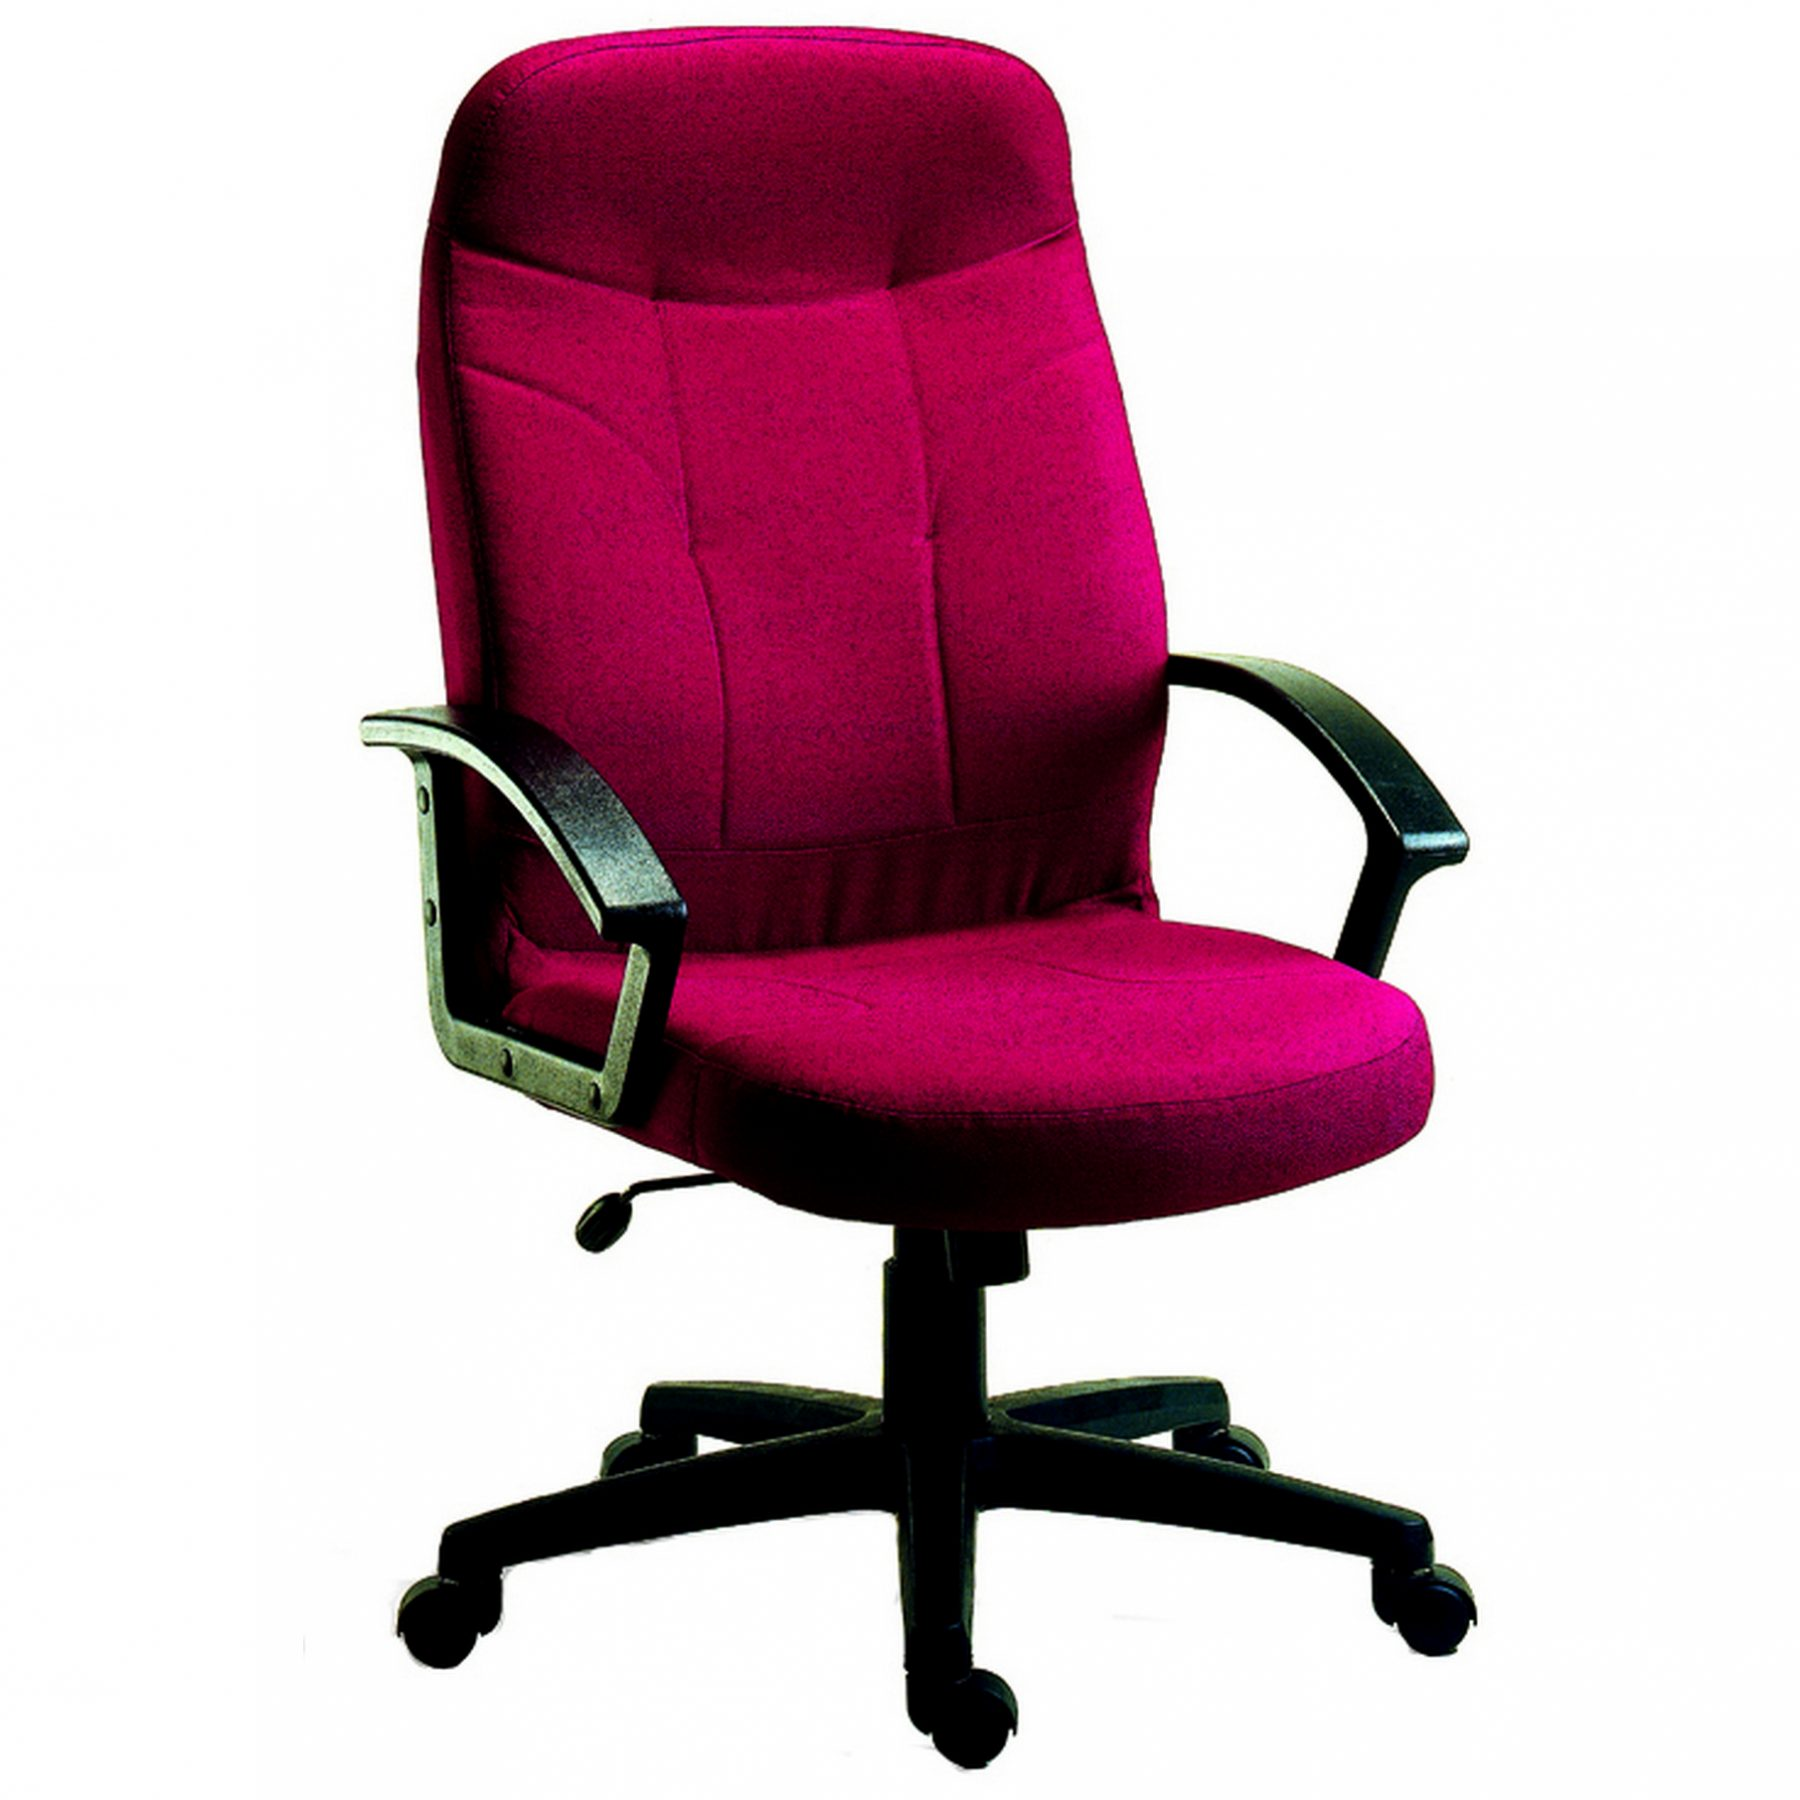 Highgate Fabric Executive Office Chair 2